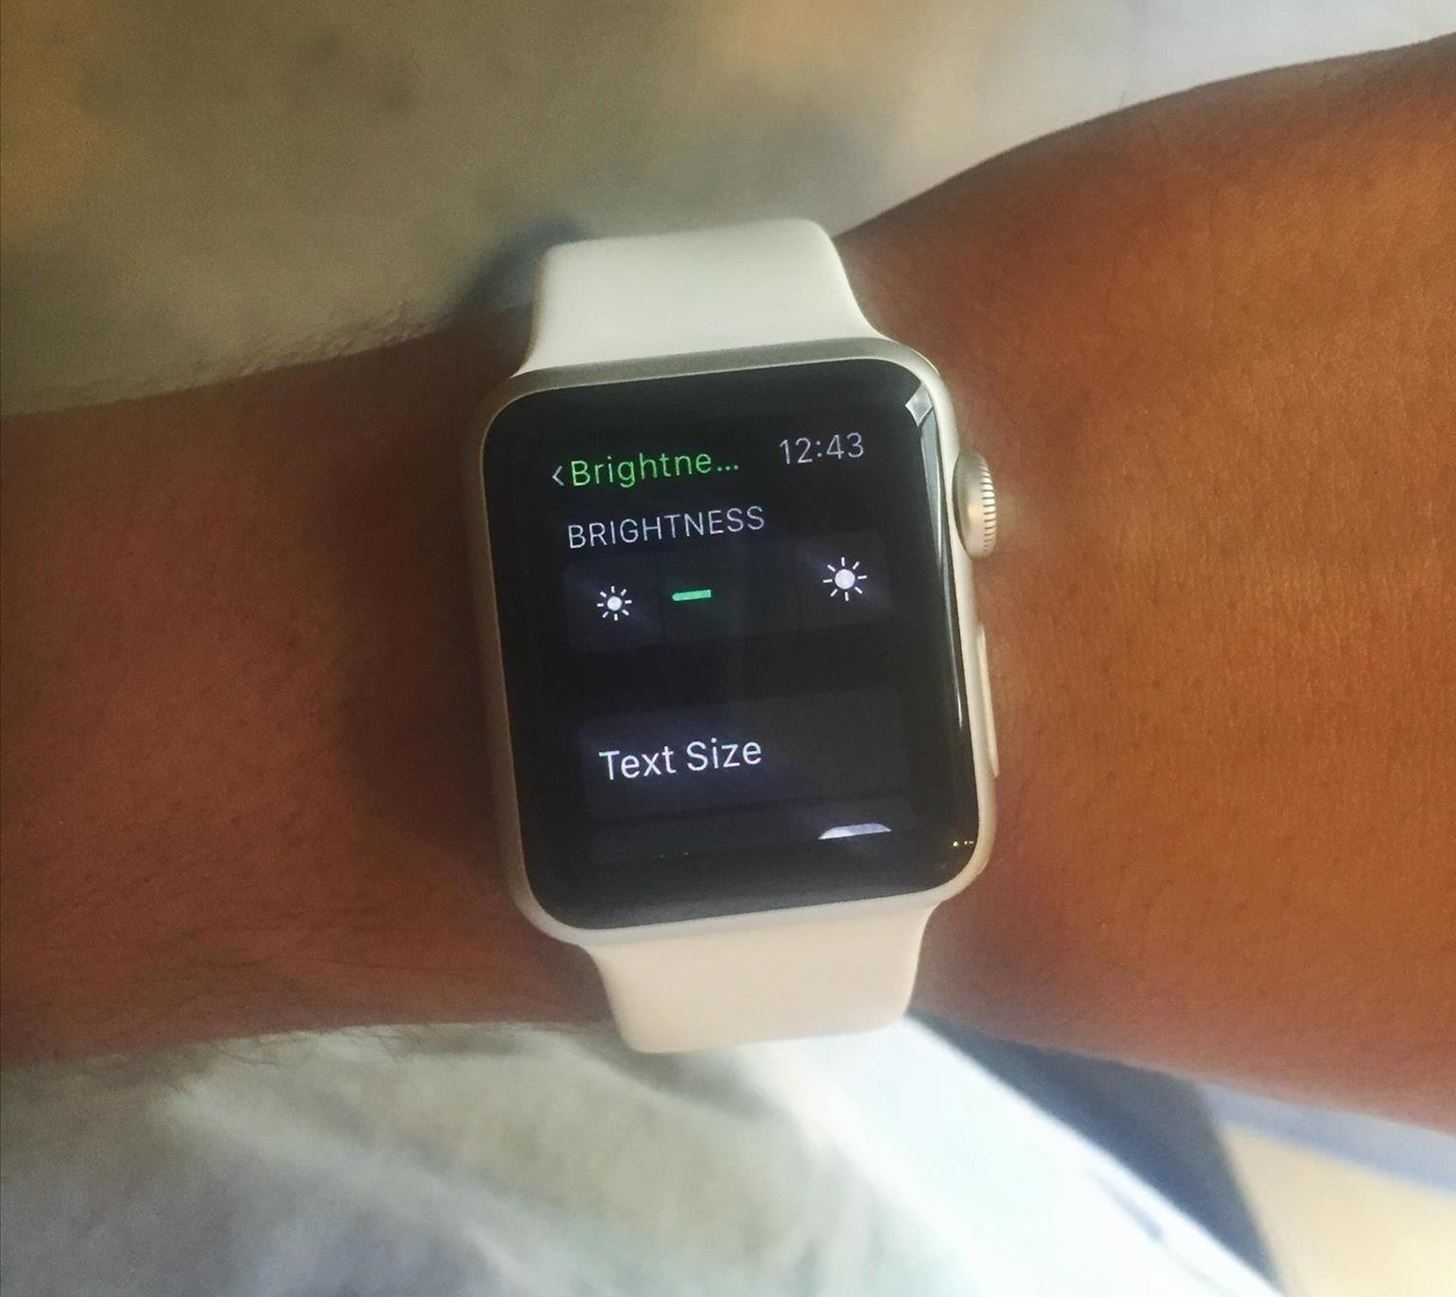 13 Ways to Extend & Save Battery Life on Your Apple Watch